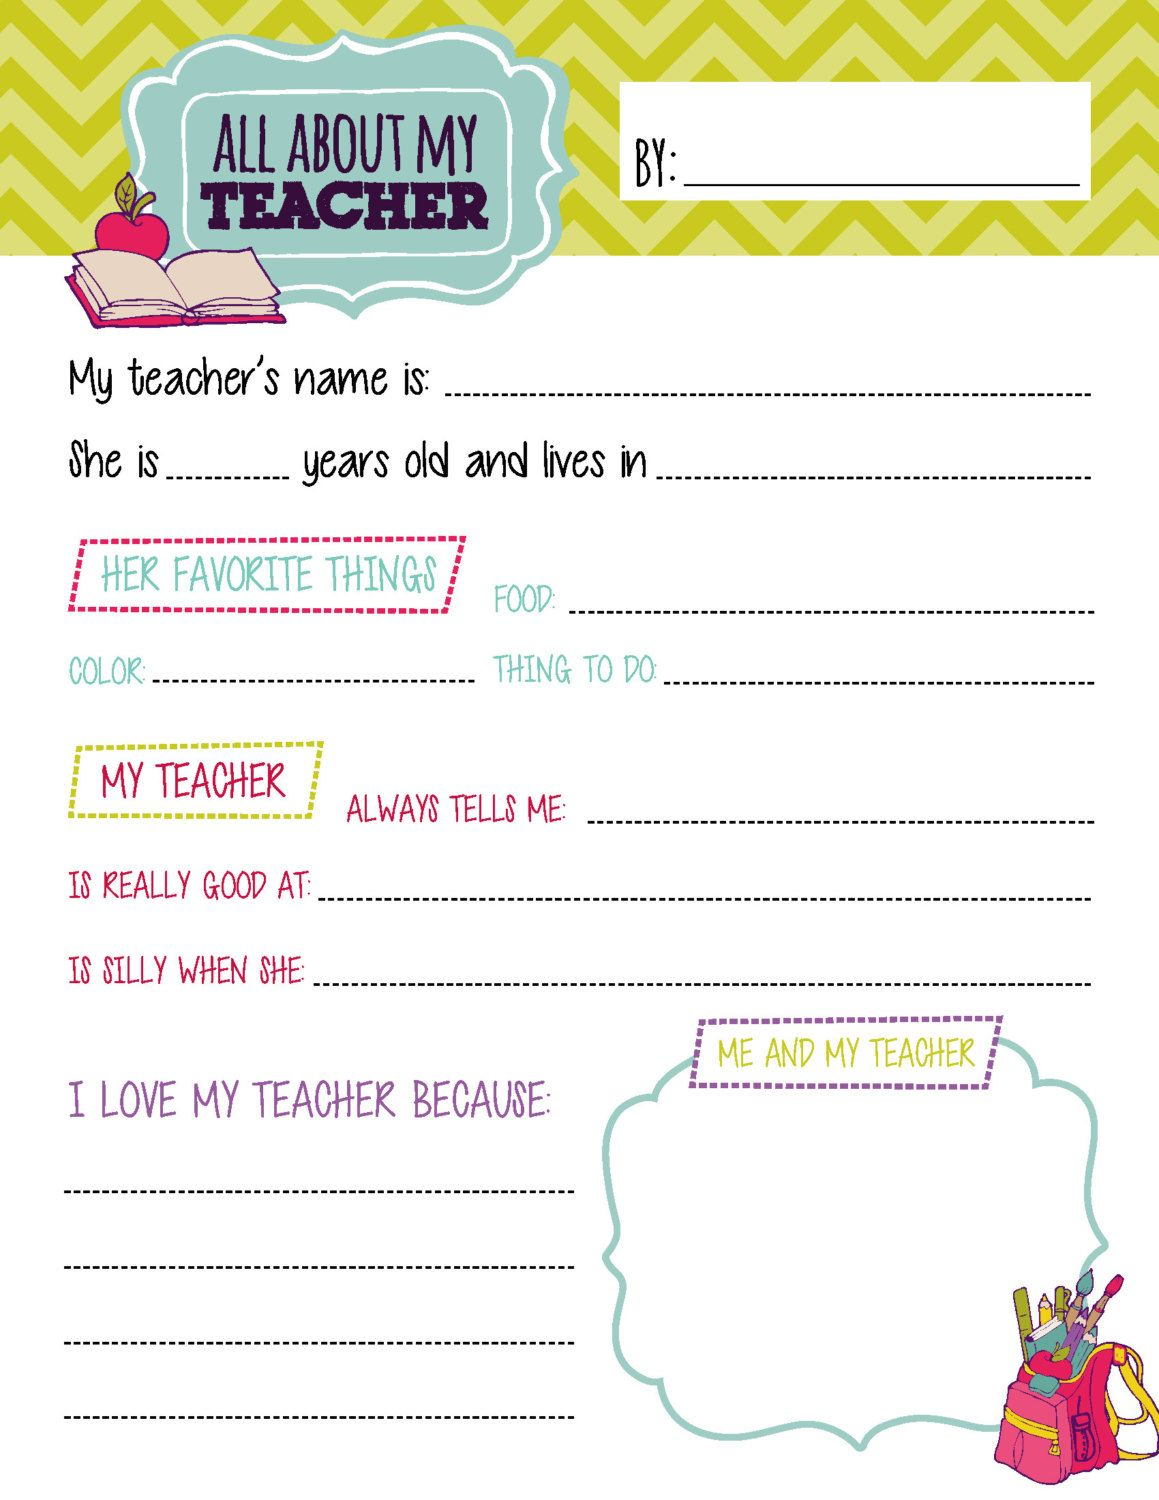 All About My Teacher Questionnaire Printables By